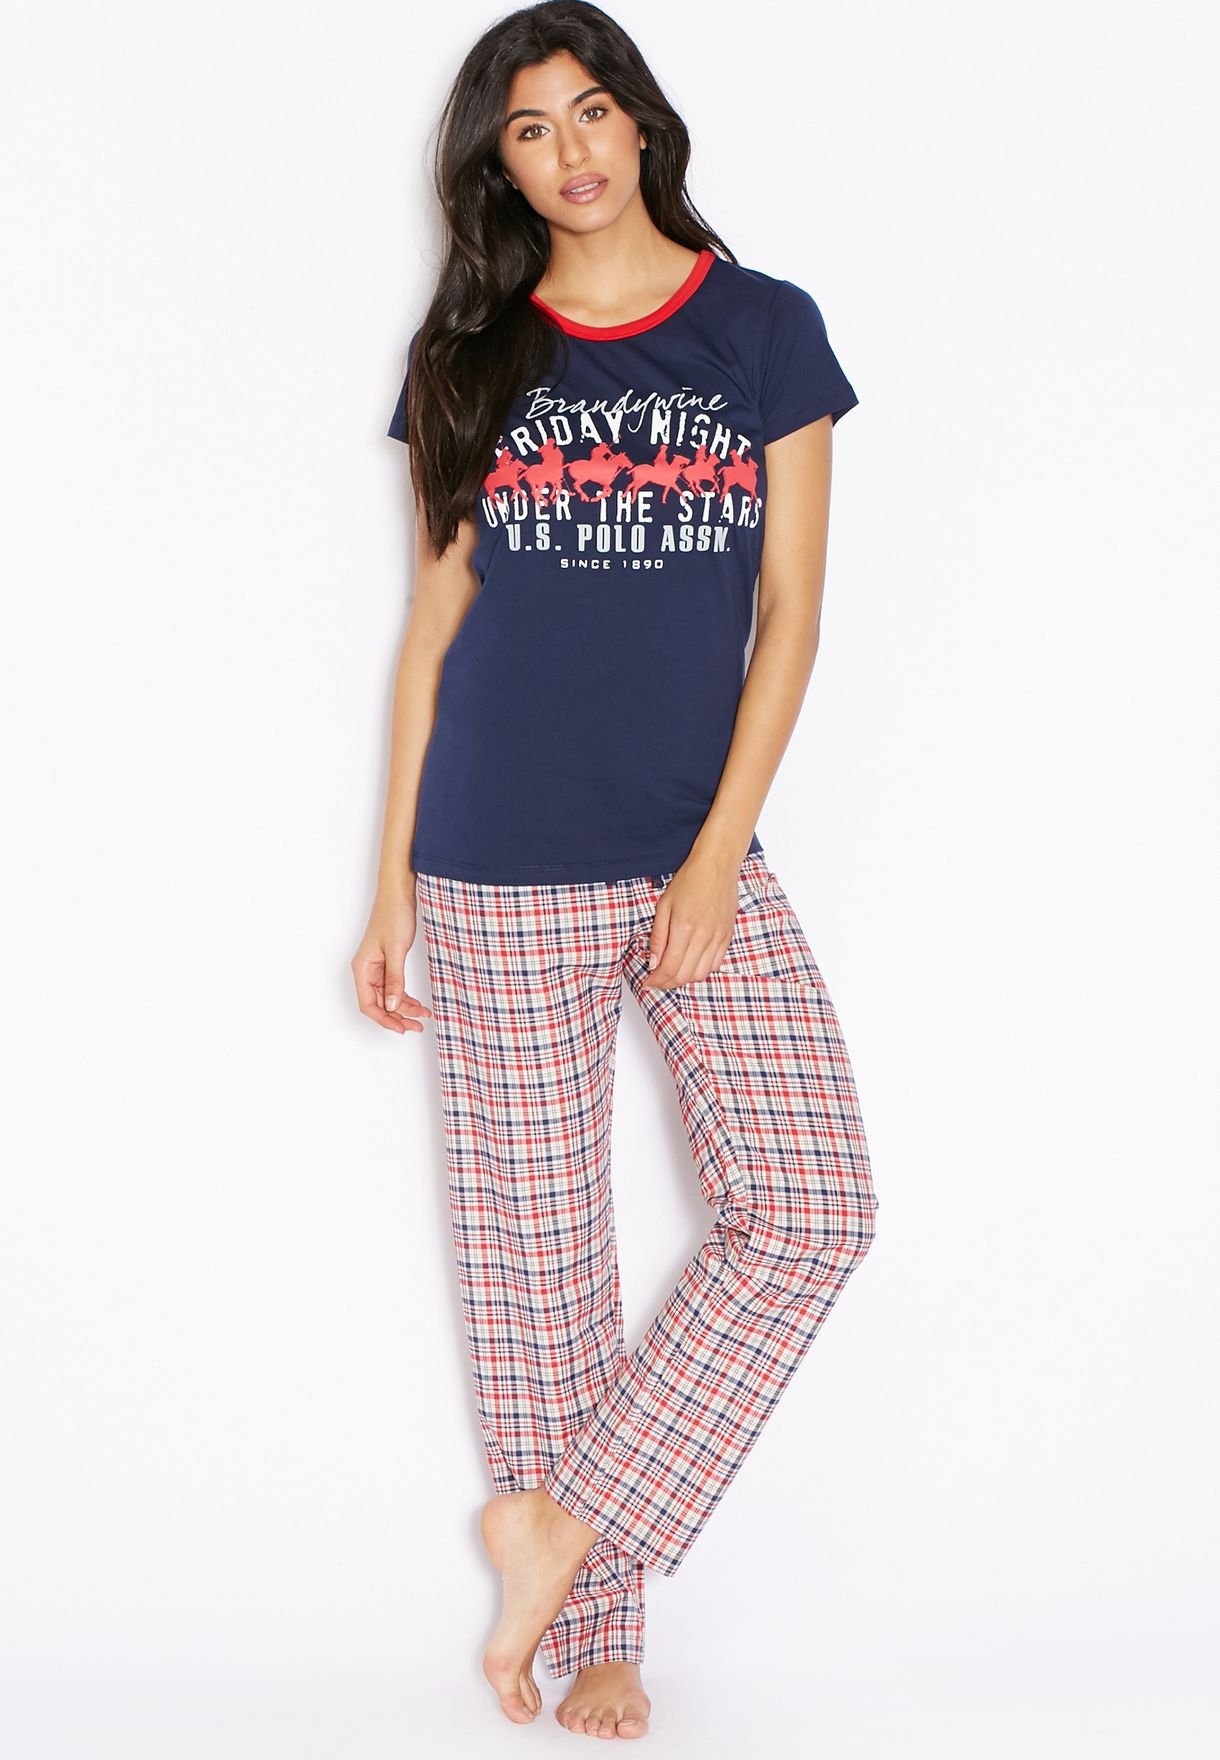 33f1db3c9f242 Shop Us polo assn navy Checked Pyjama Set for Women in Bahrain ...